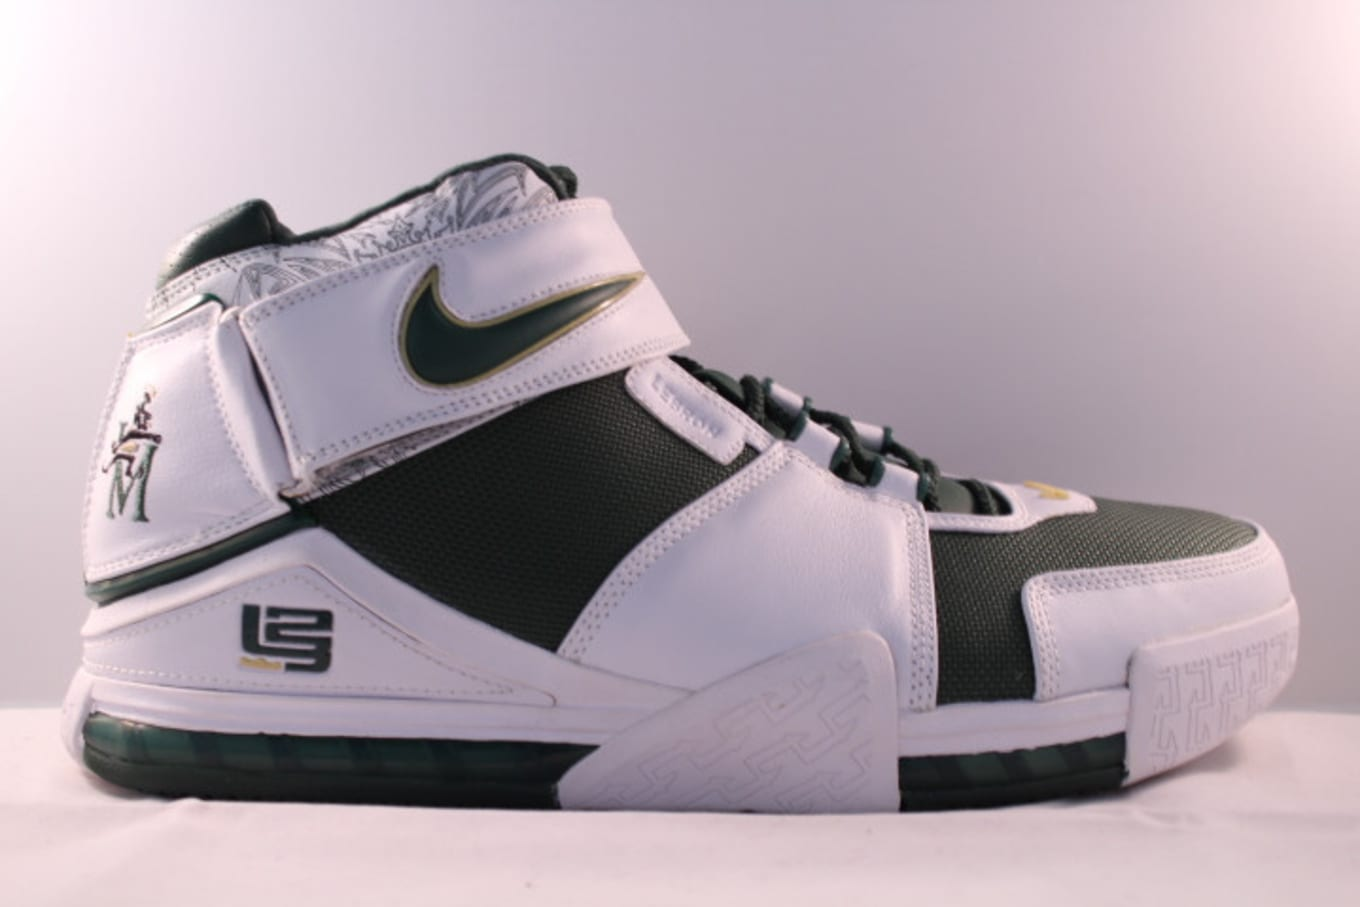 2ec5cfd7e Nike LeBron Samples That Never Released